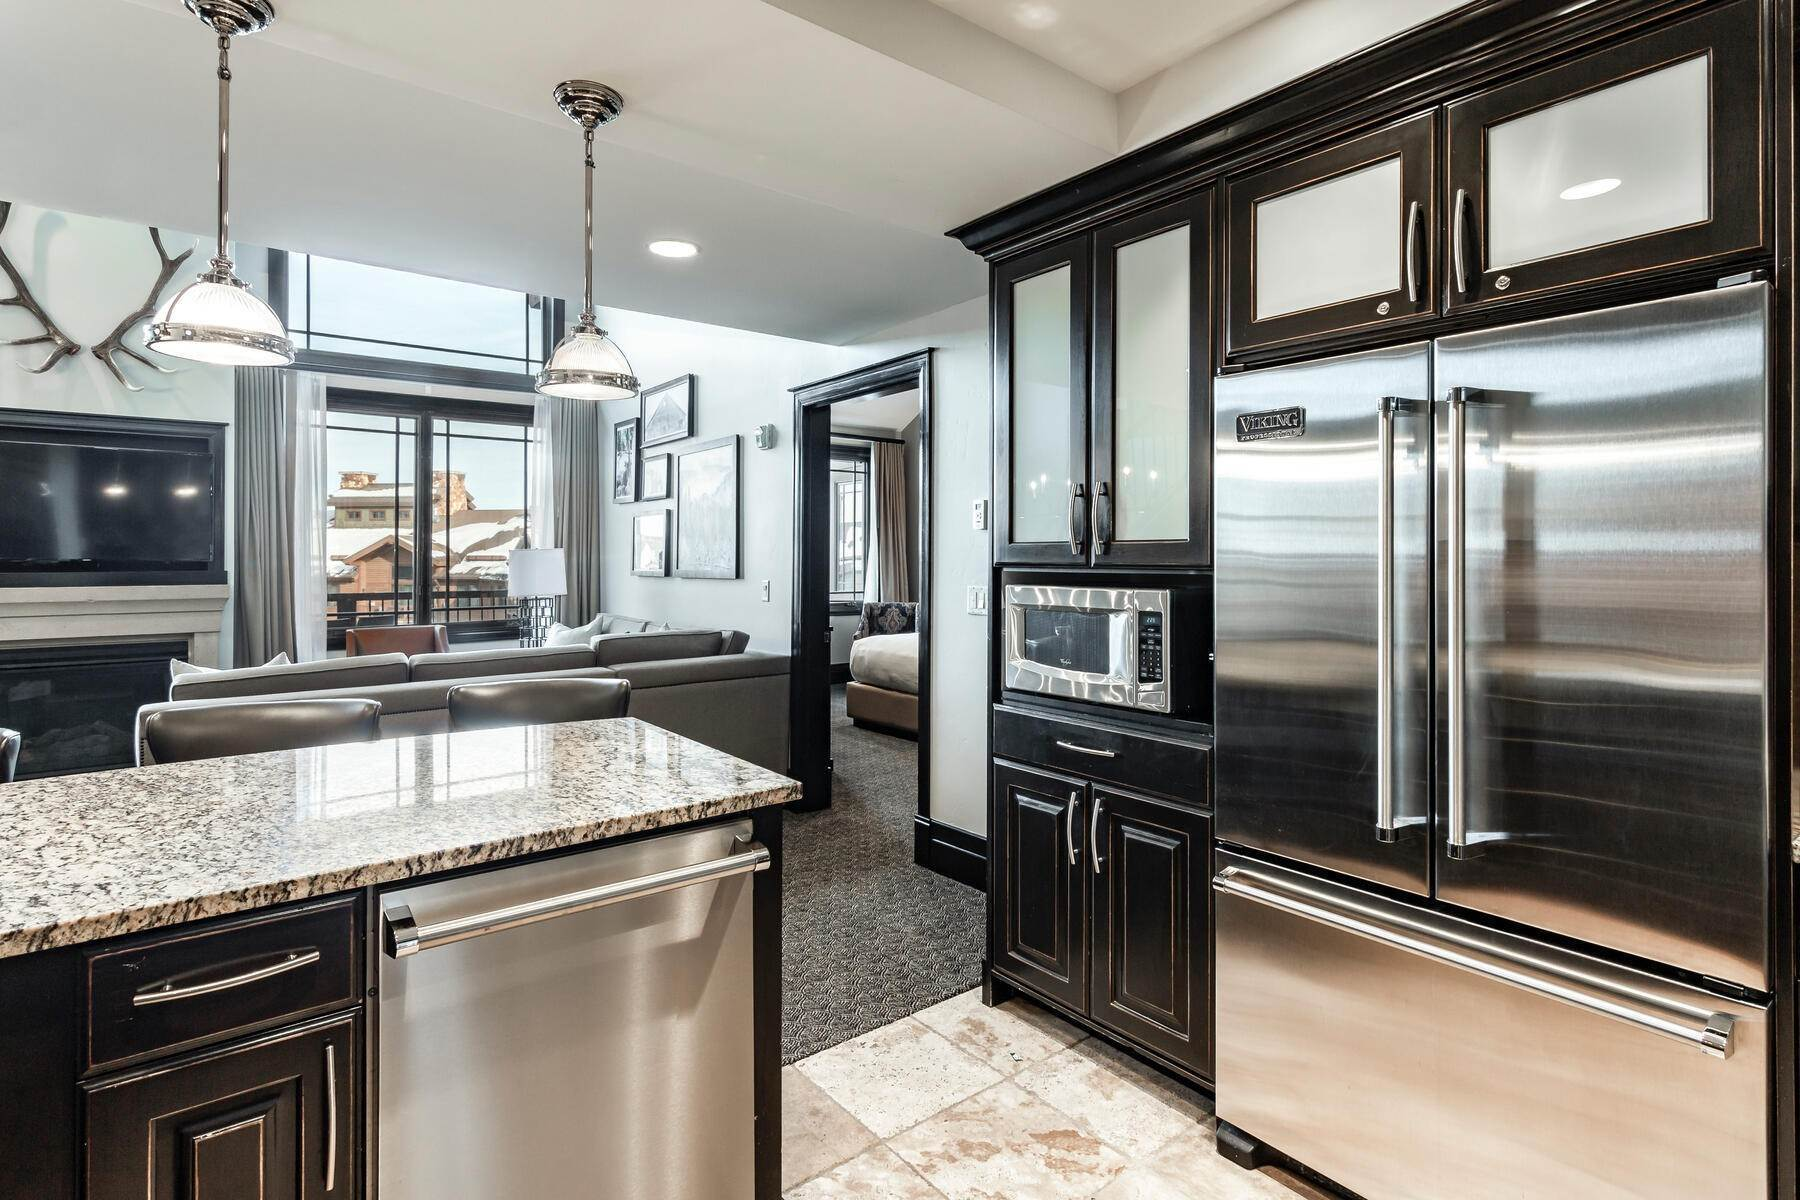 3. Condominiums for Sale at Only 4-Bedroom Available at Waldorf Astoria, Top Floor, Penthouse Unit 2100 W Frostwood Blvd, #7117 Park City, Utah 84098 United States